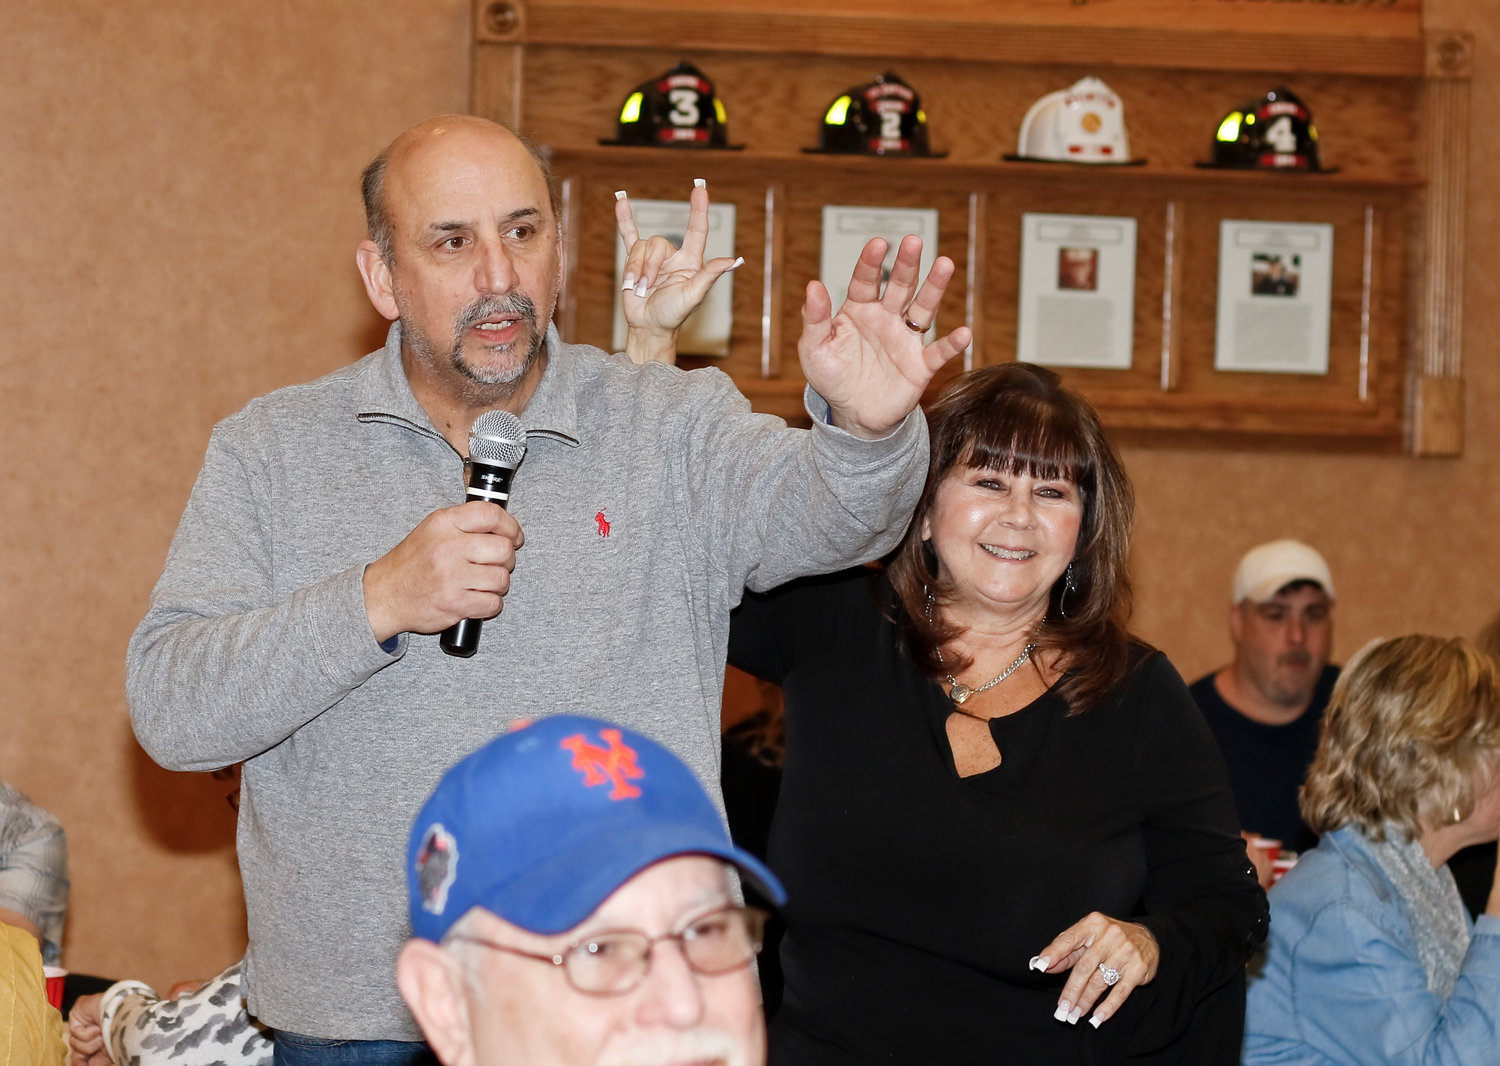 East Meadow Kiwanis President Alan Beinhacker welcomed everyone to the organization's 11th annual Name that Tune fundraiser, based off the 1950s game show of the same name, on Feb. 7 at the East Meadow Fire Department Headquarters. Past President Debbie Kirsh showed her love in sign language.